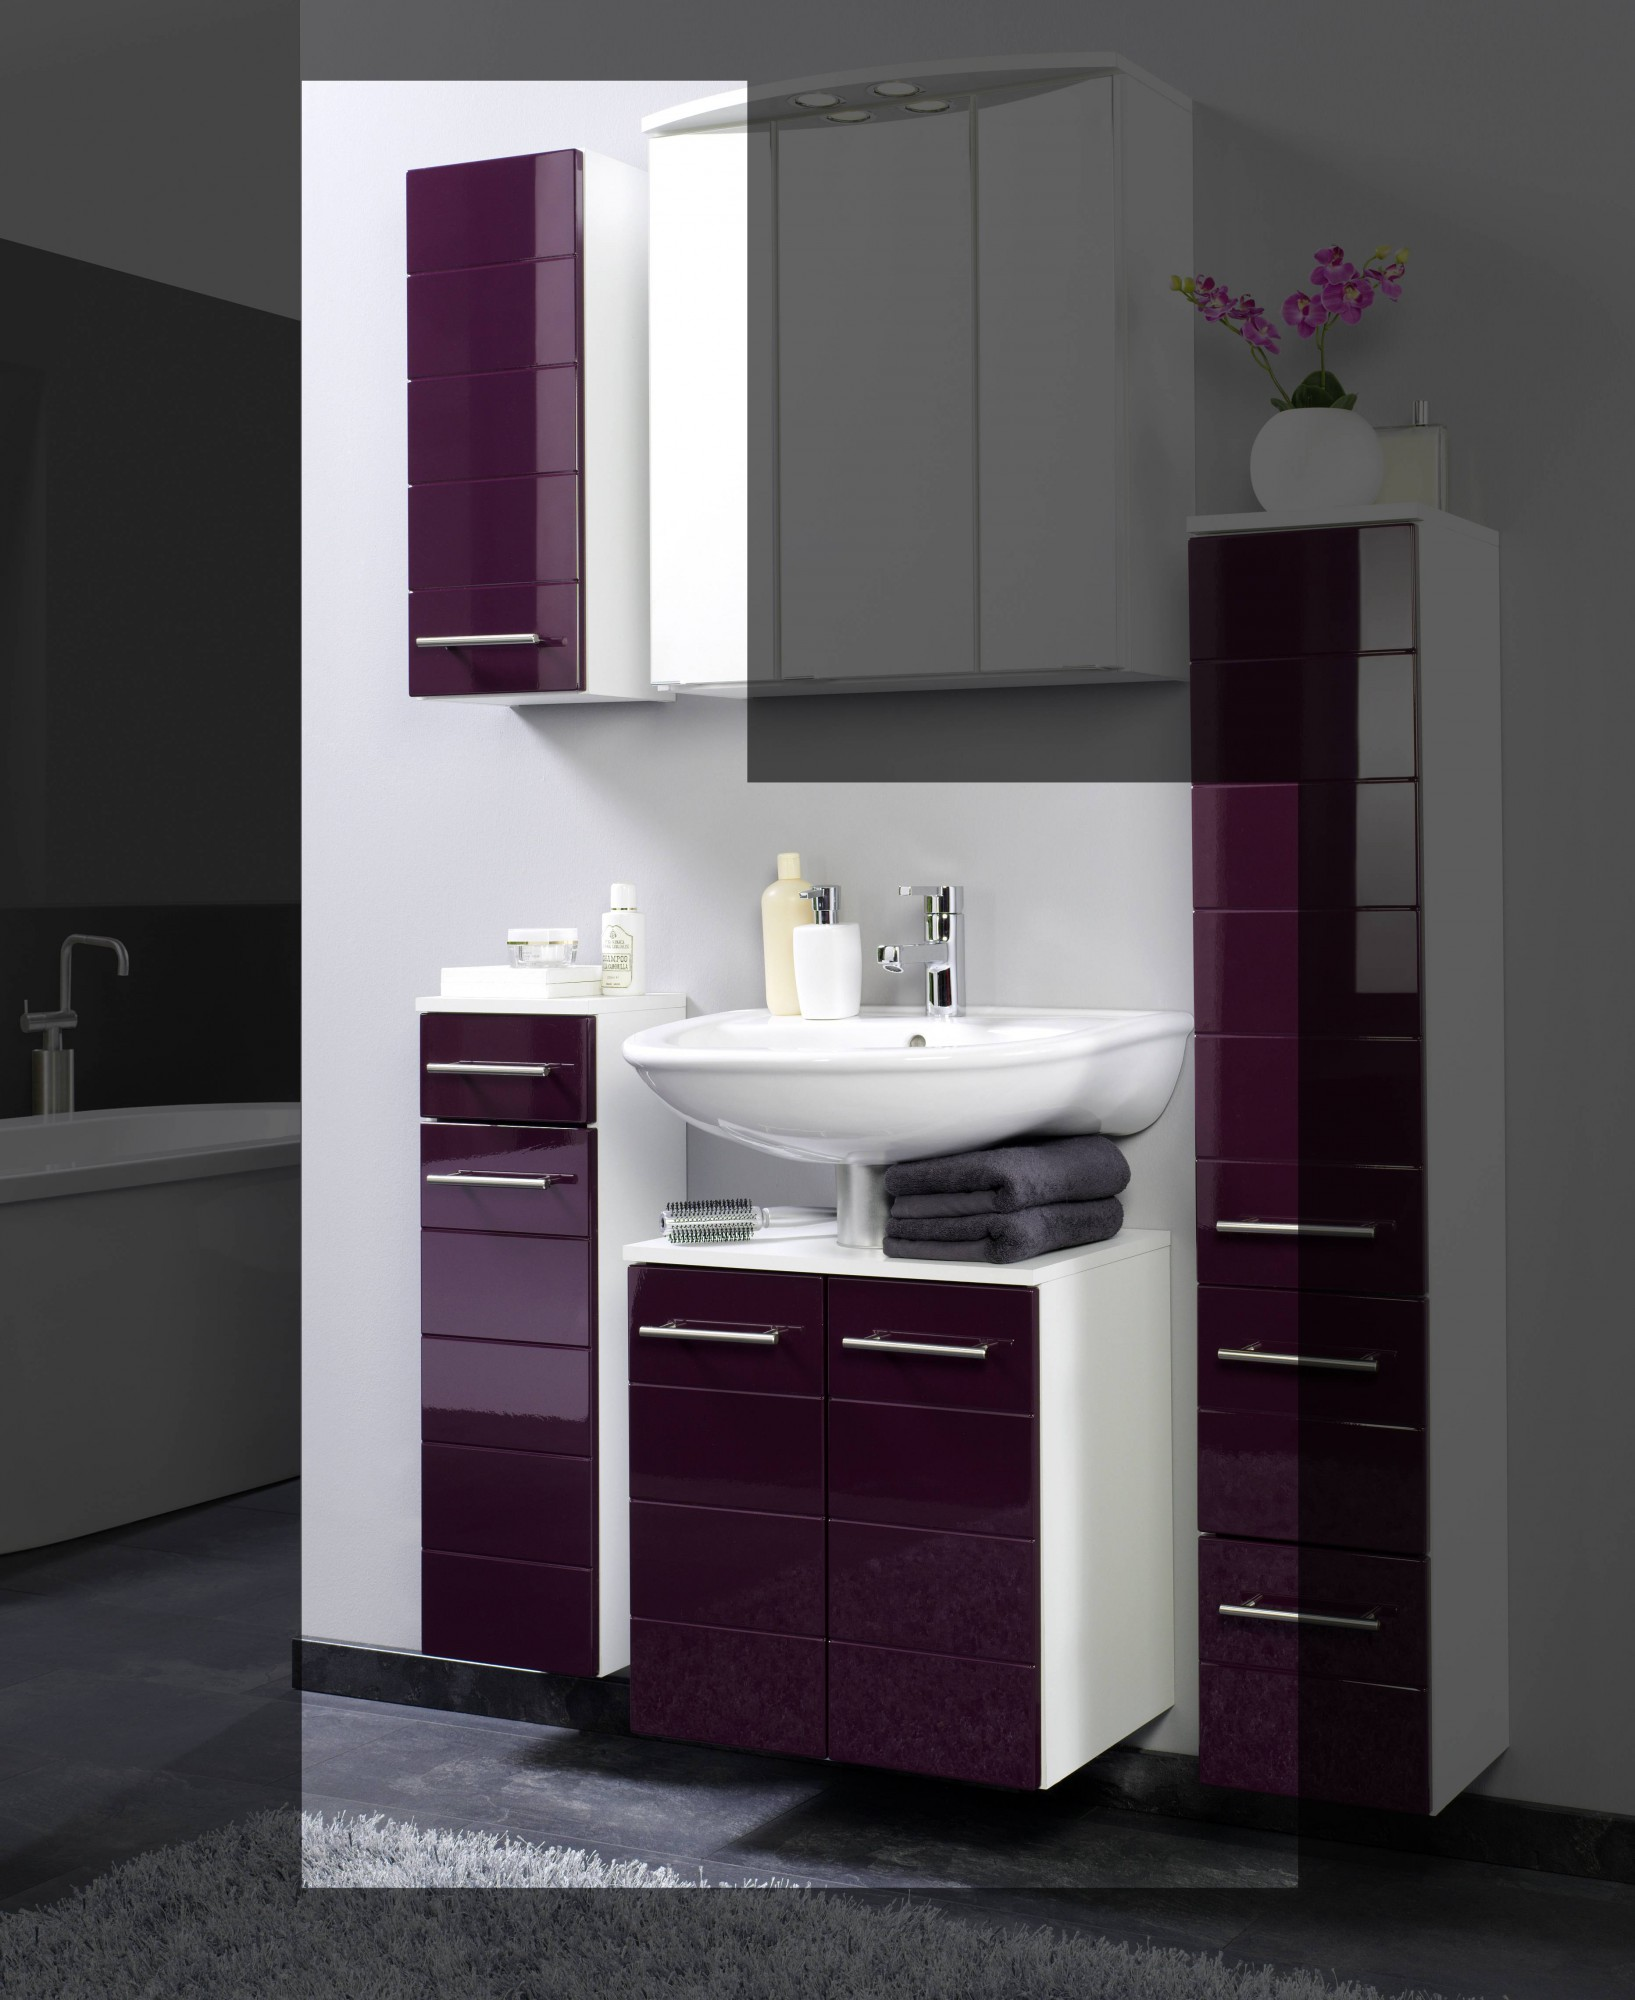 badm bel set rimini 3 teilig 75 cm breit hochglanz aubergine bad rimini. Black Bedroom Furniture Sets. Home Design Ideas